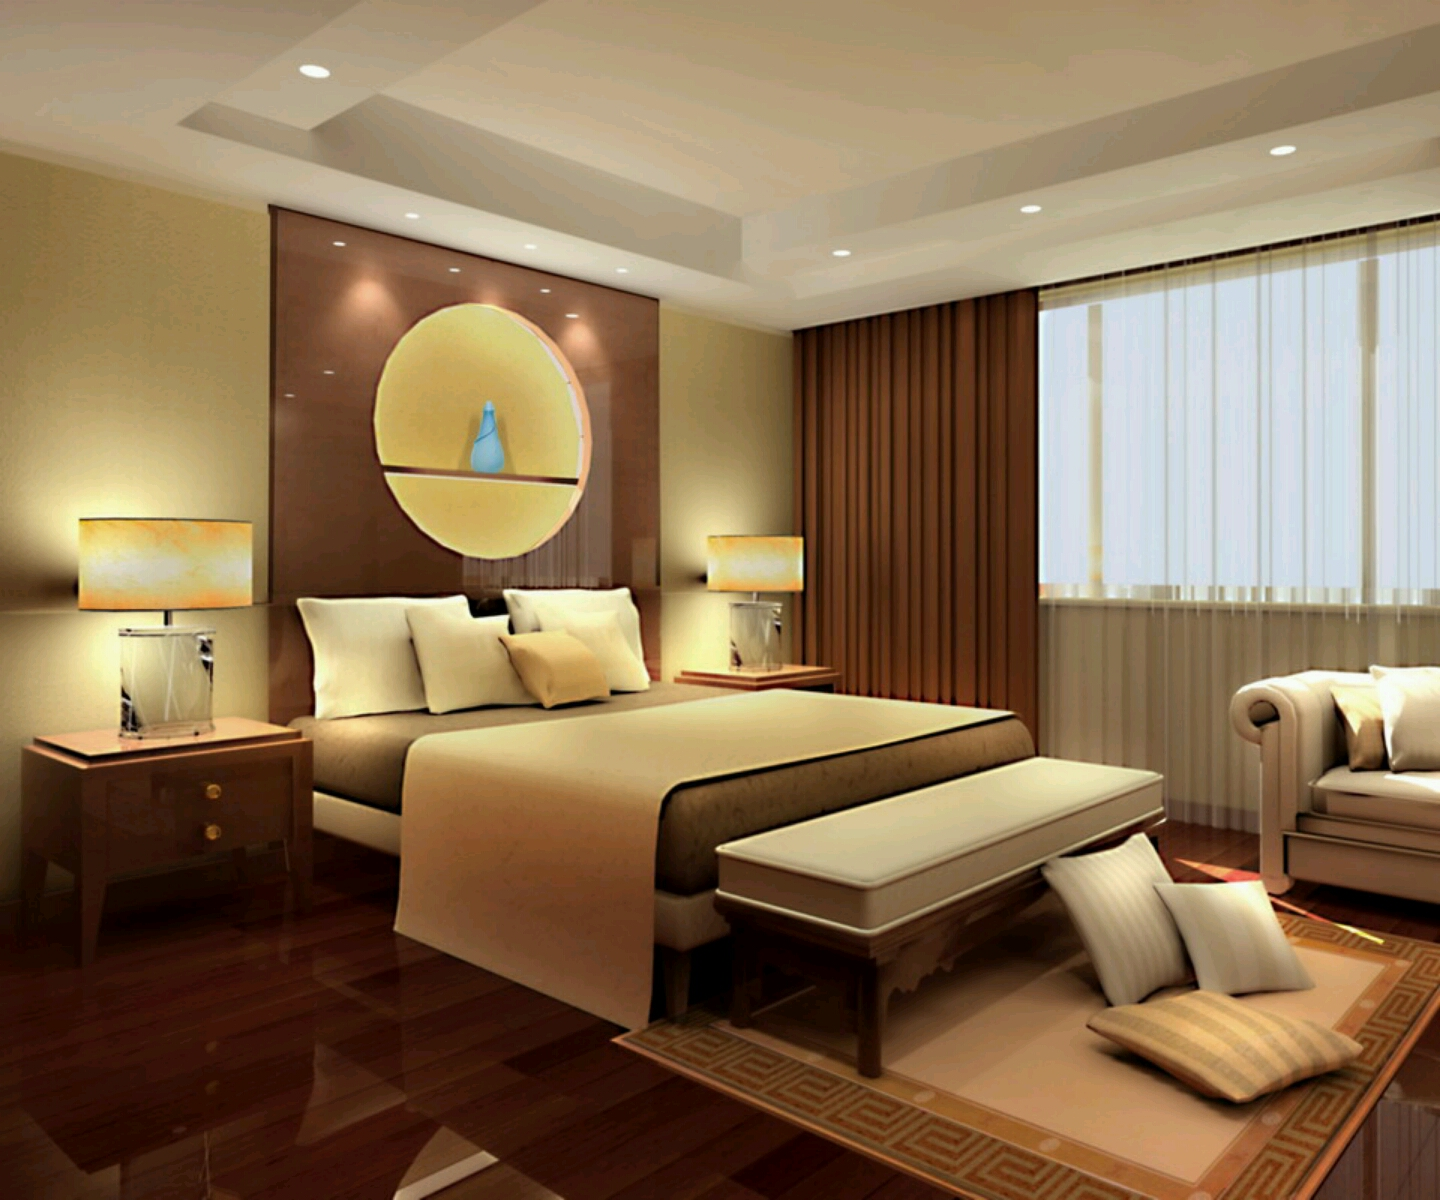 New home designs latest modern beautiful bedrooms interior decoration designs - Beautiful rooms ...